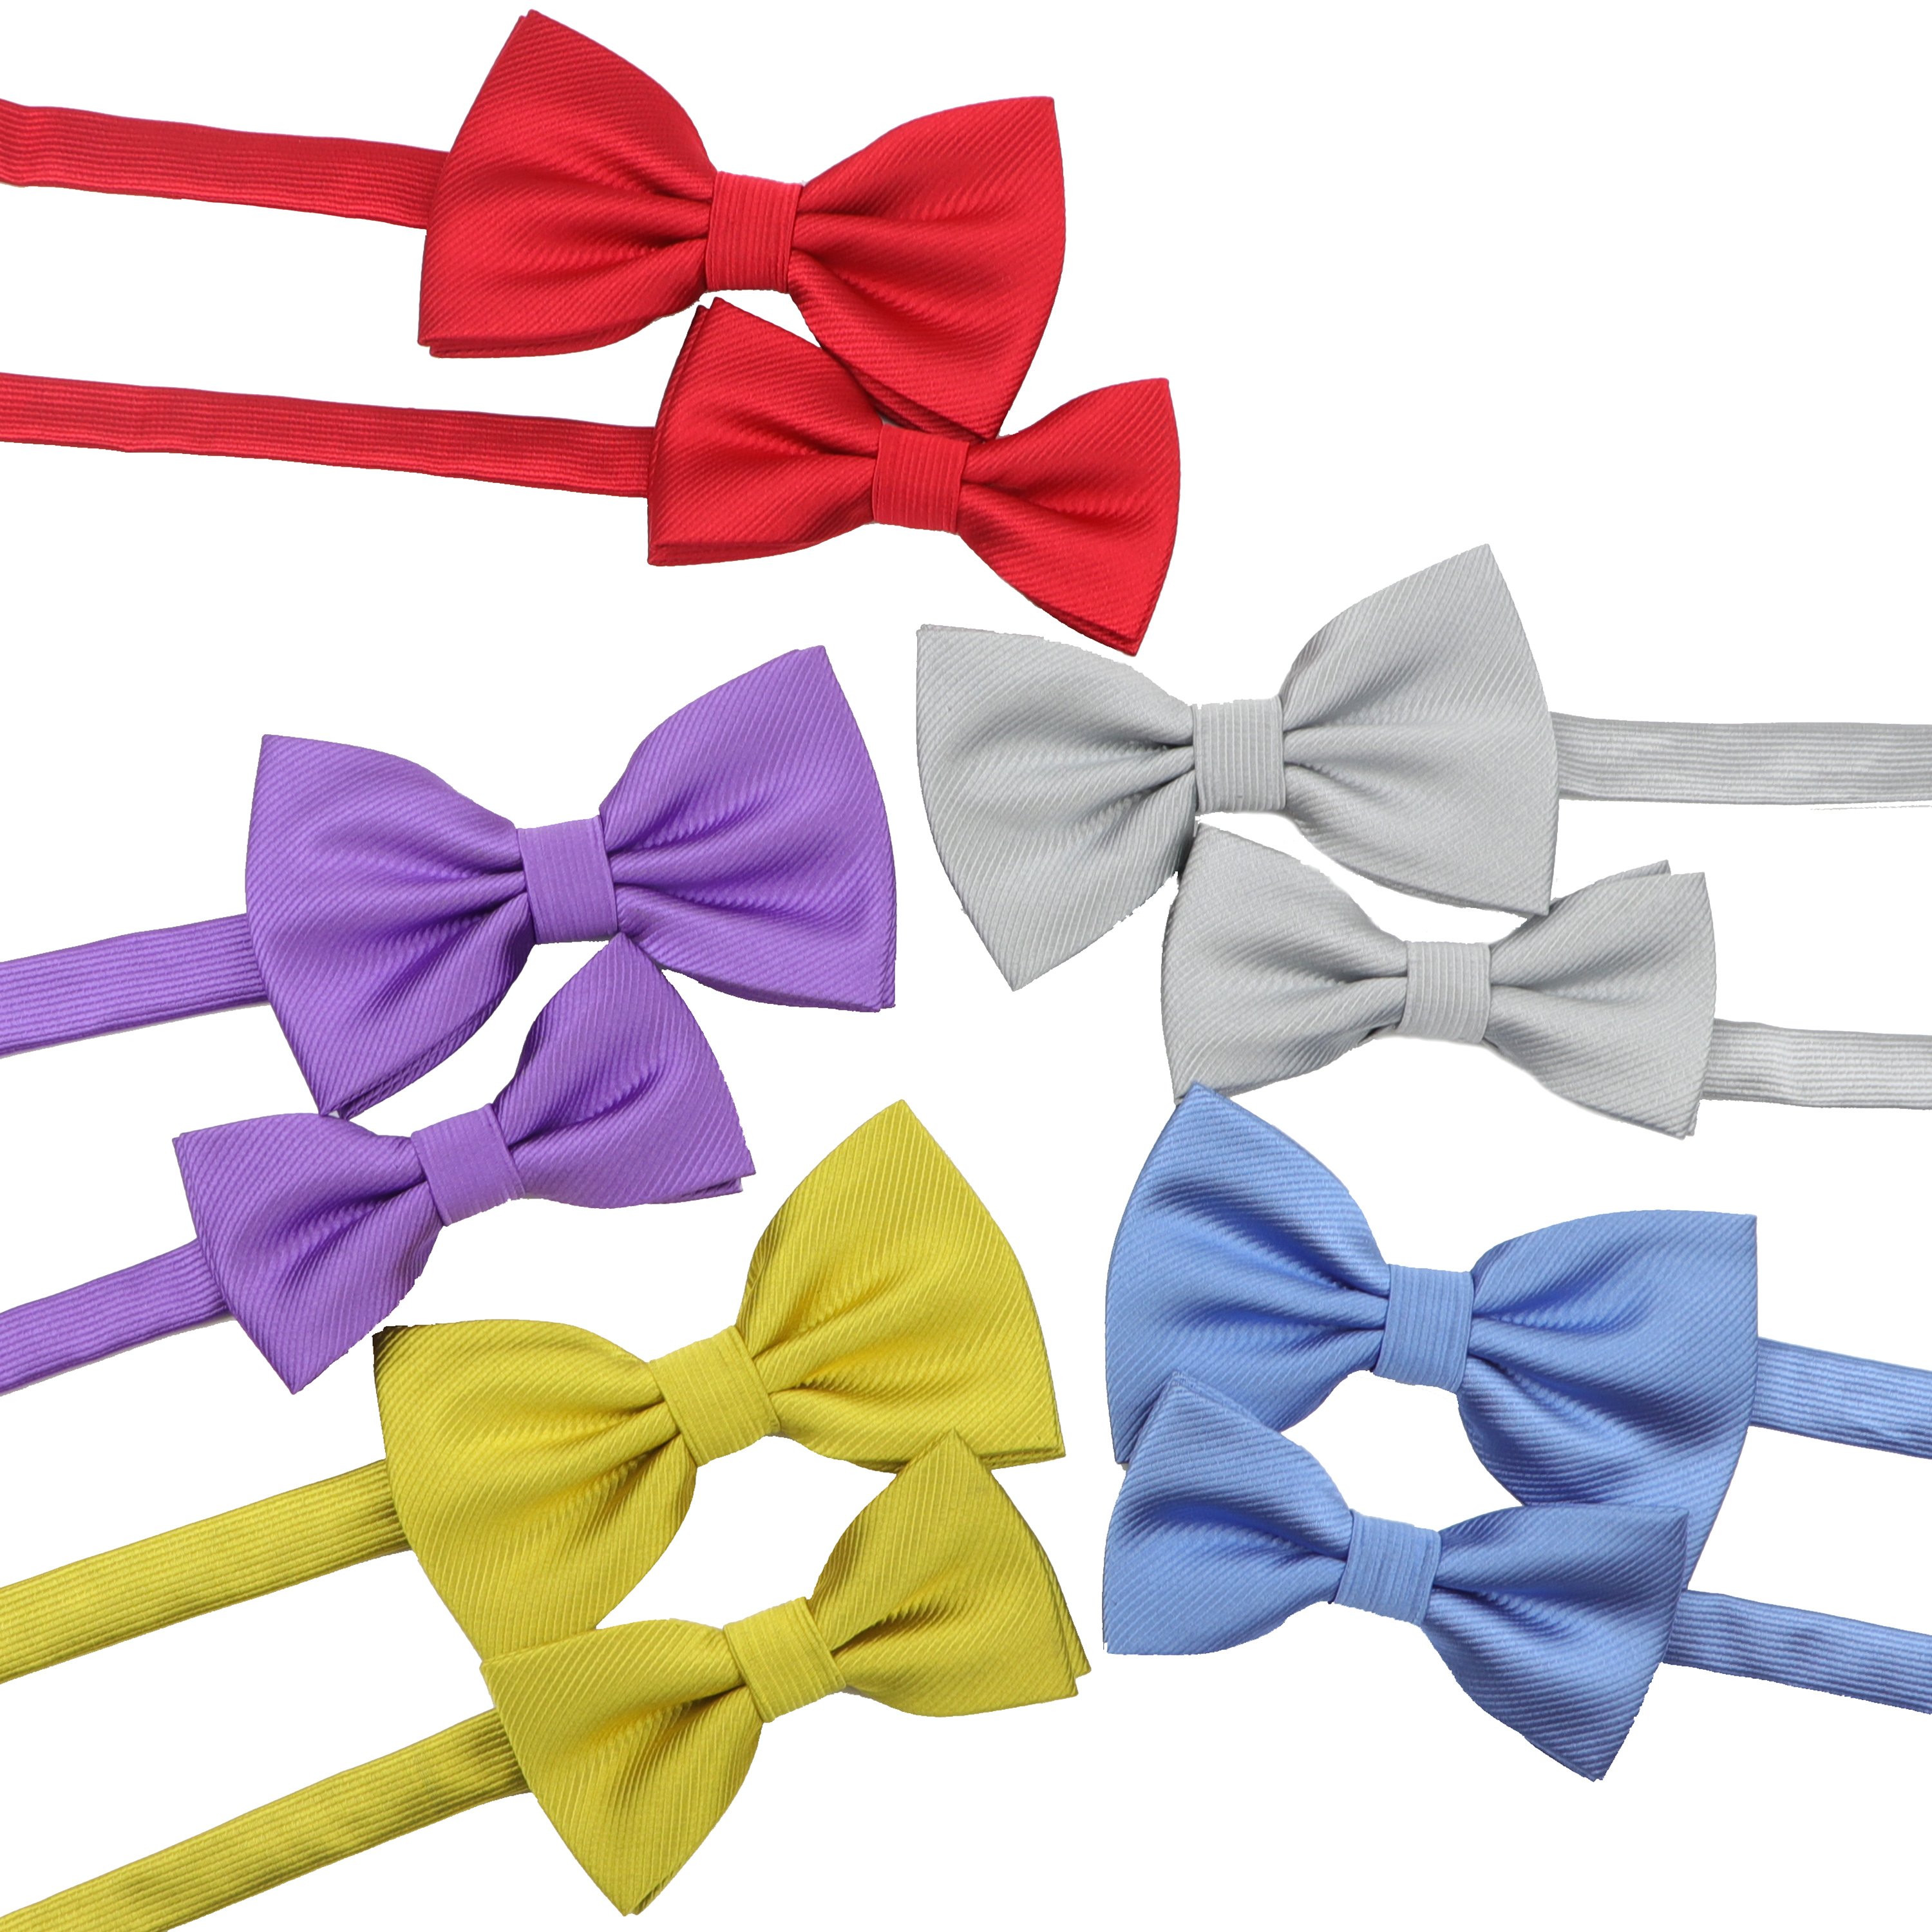 Solid Colorful Bowtie Set Classic Cute Family Two Folds Butterfly Party Dinner Wedding Design Cute Bow Tie Accessory Gift